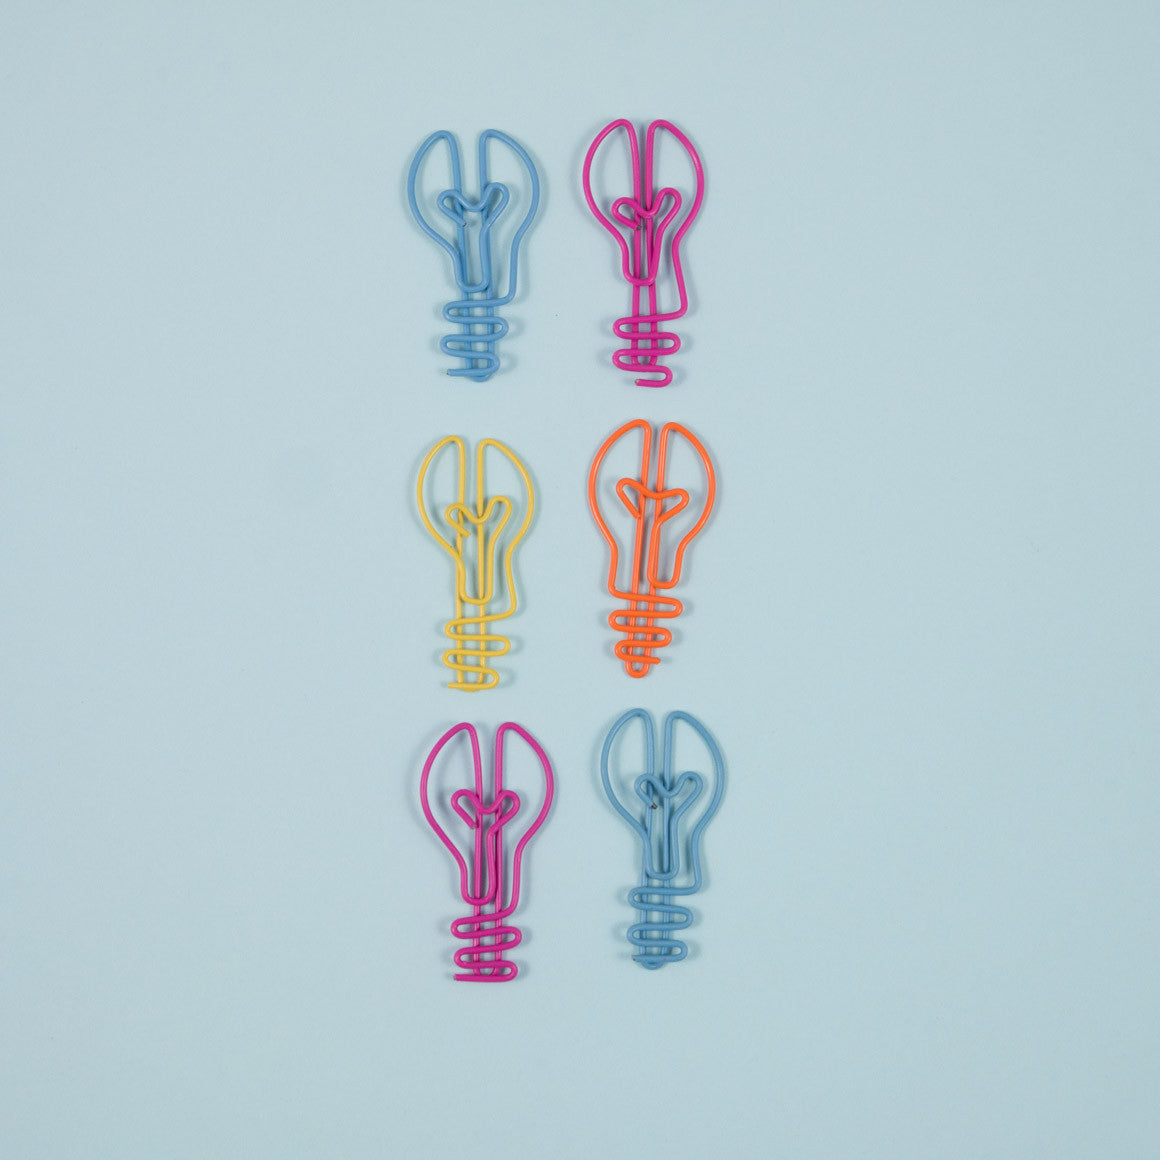 lightbulb shaped paperclip